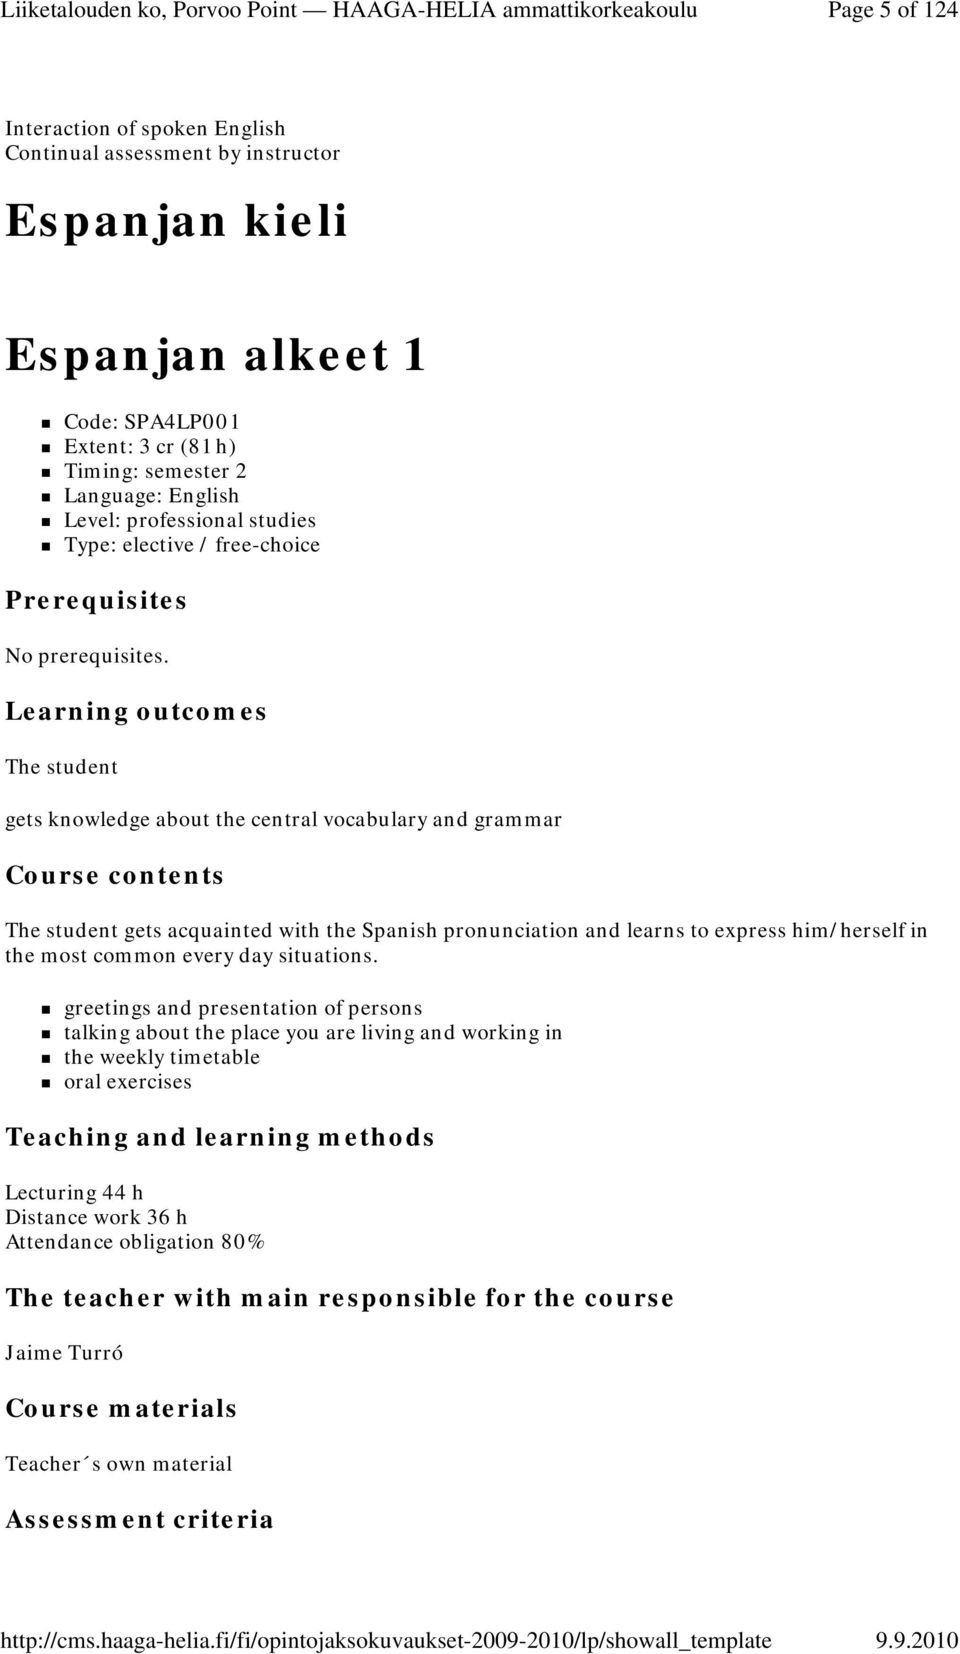 Learning outcomes The student gets knowledge about the central vocabulary and grammar Course contents The student gets acquainted with the Spanish pronunciation and learns to express him/herself in